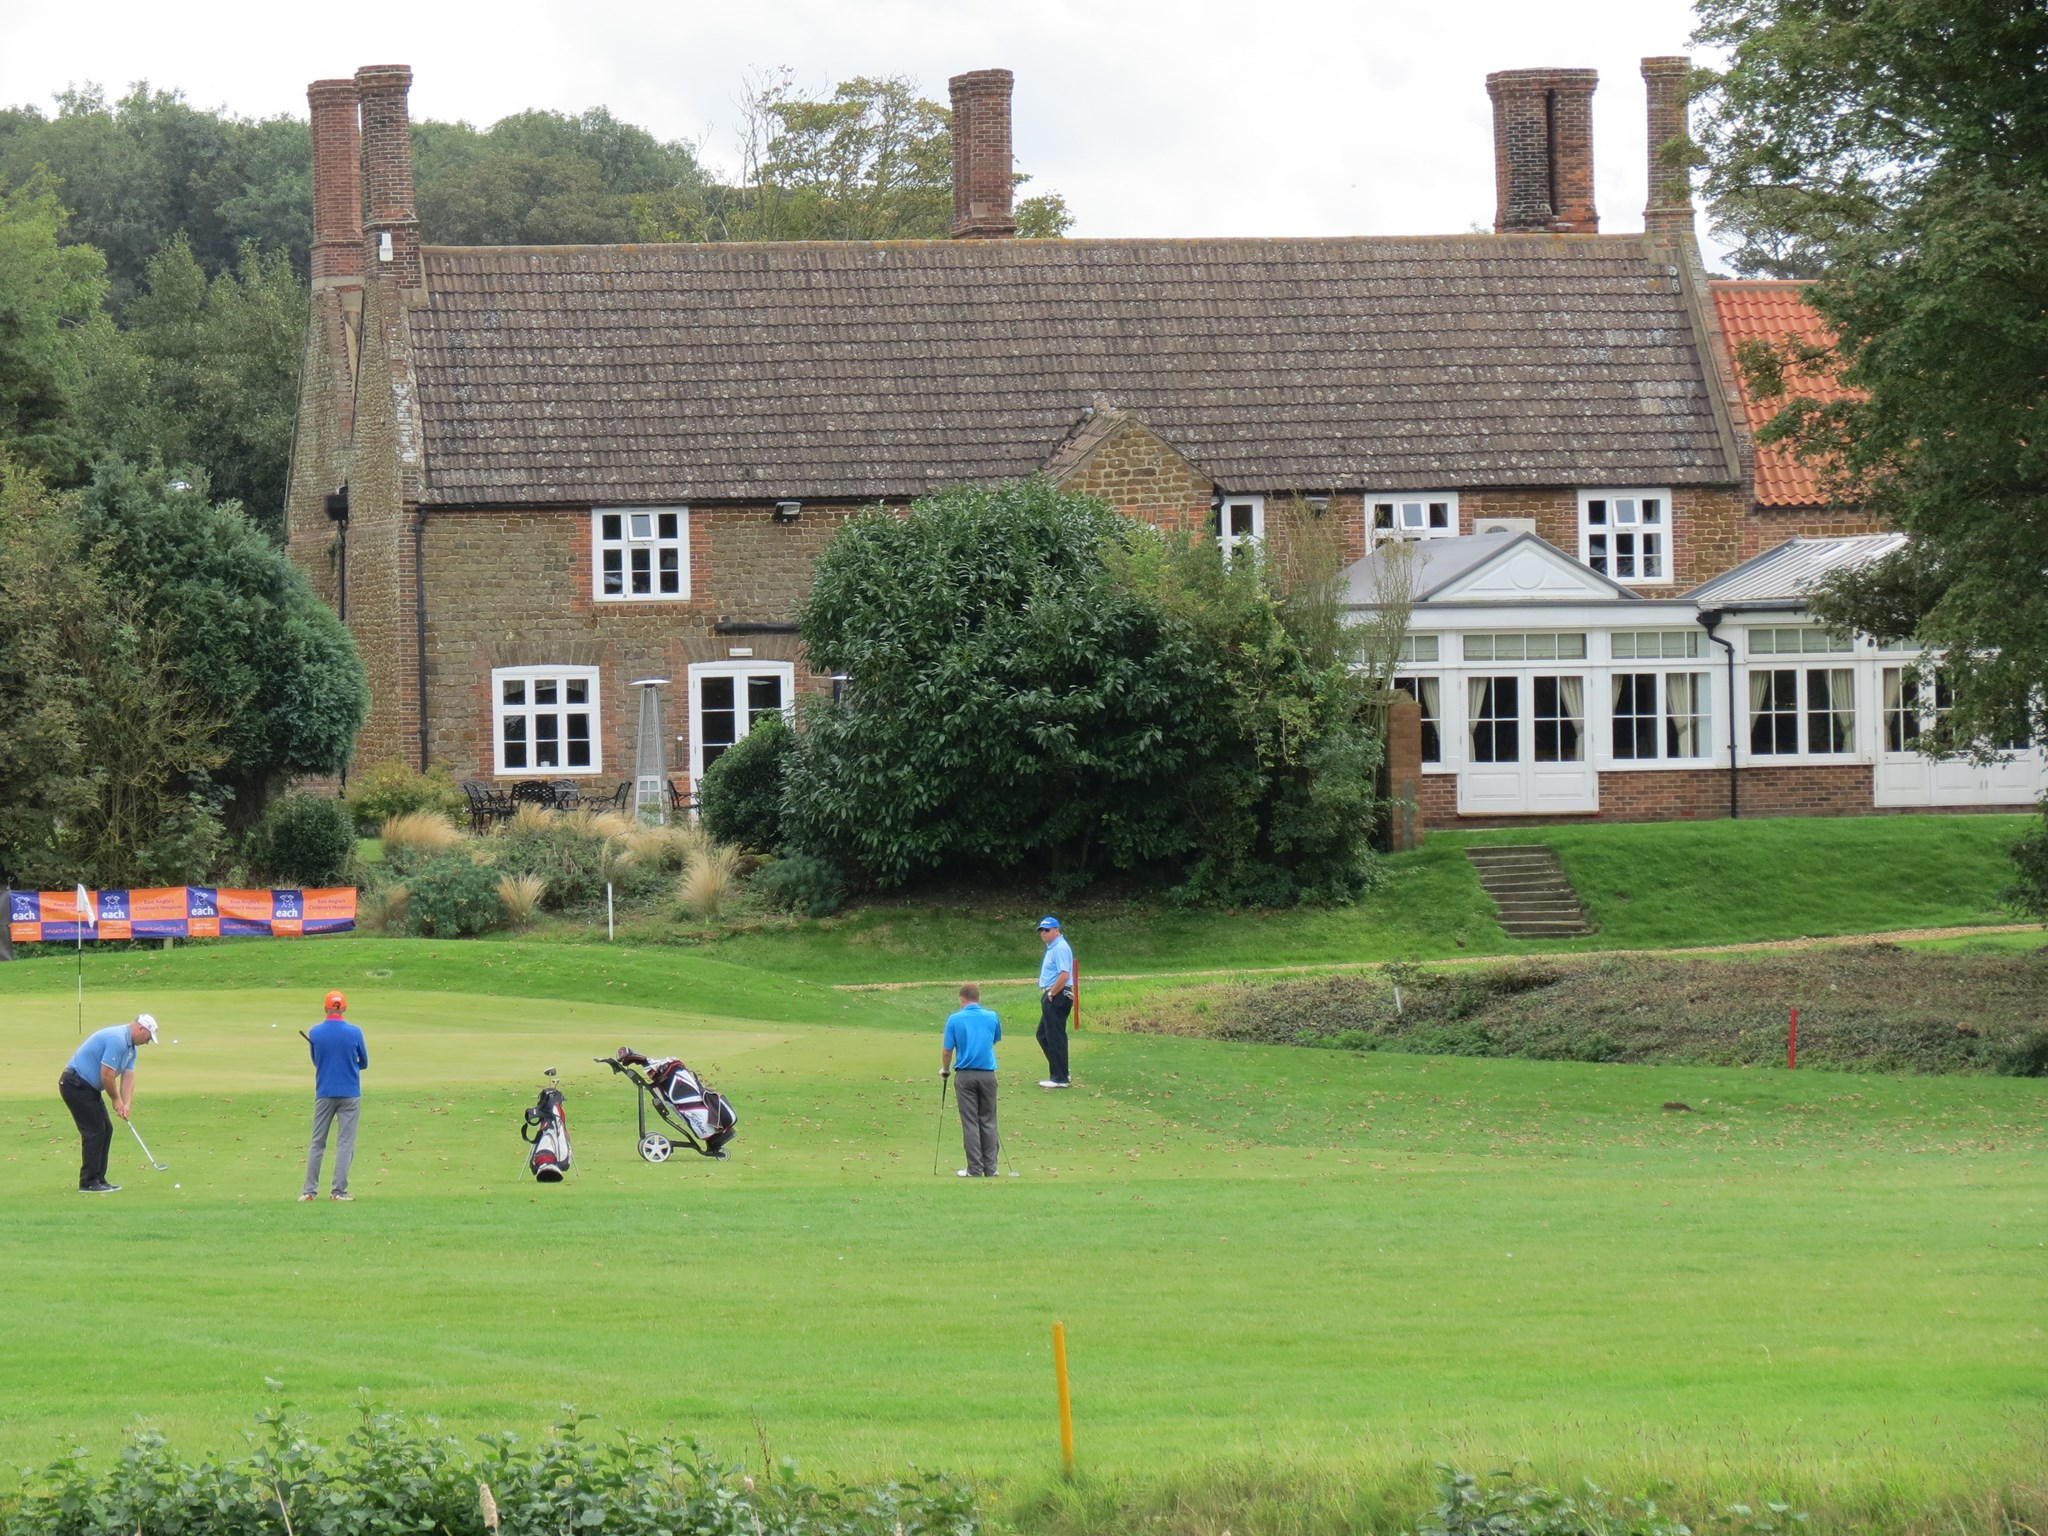 15th green, ntp and par 3 challenge, nights dinner b&b curtesy of knights hill hotel